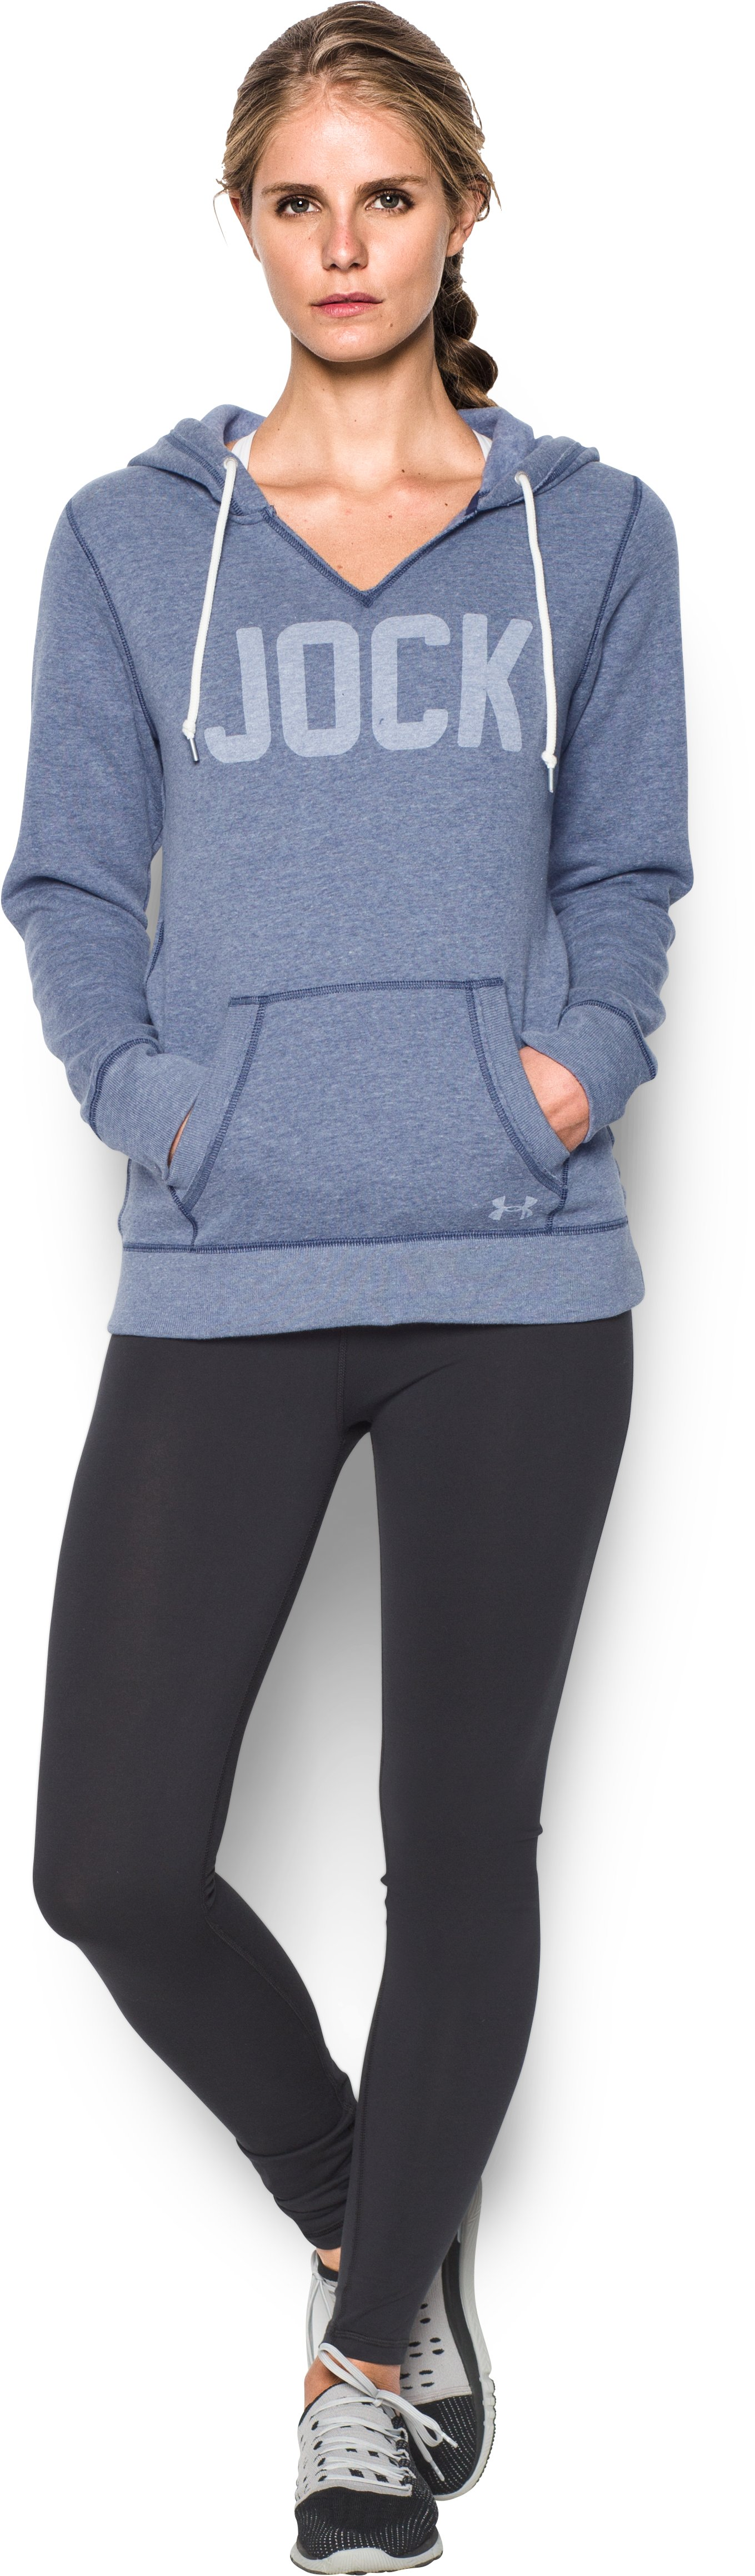 Women's UA Favorite Fleece - Jock, Midnight Navy